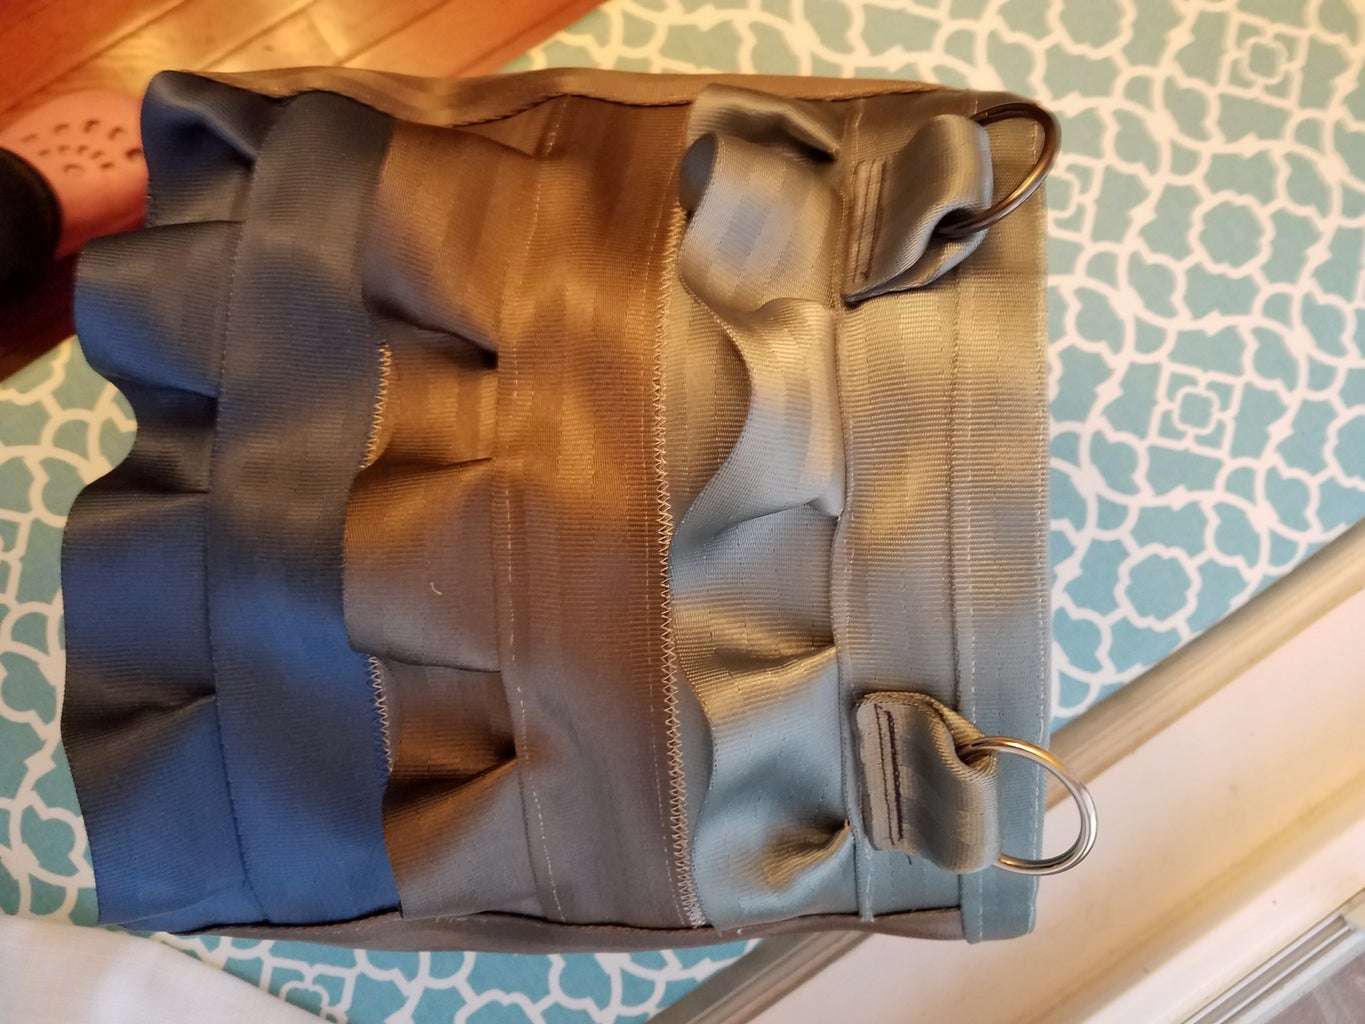 Sew Lining to Outside Shell With Seatbelt Rim